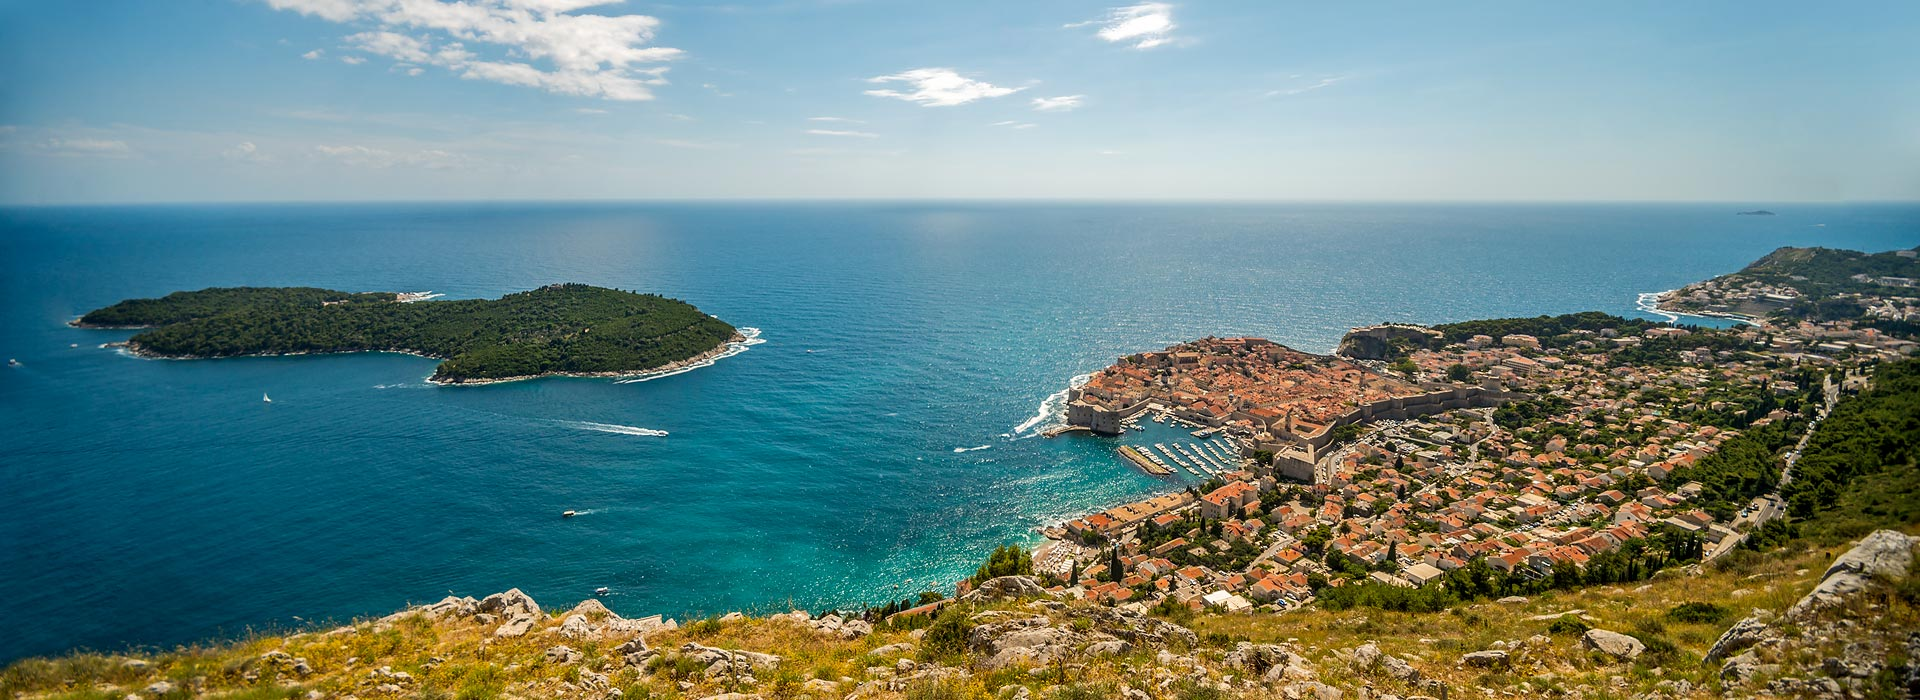 Excursion to Dubrovnik